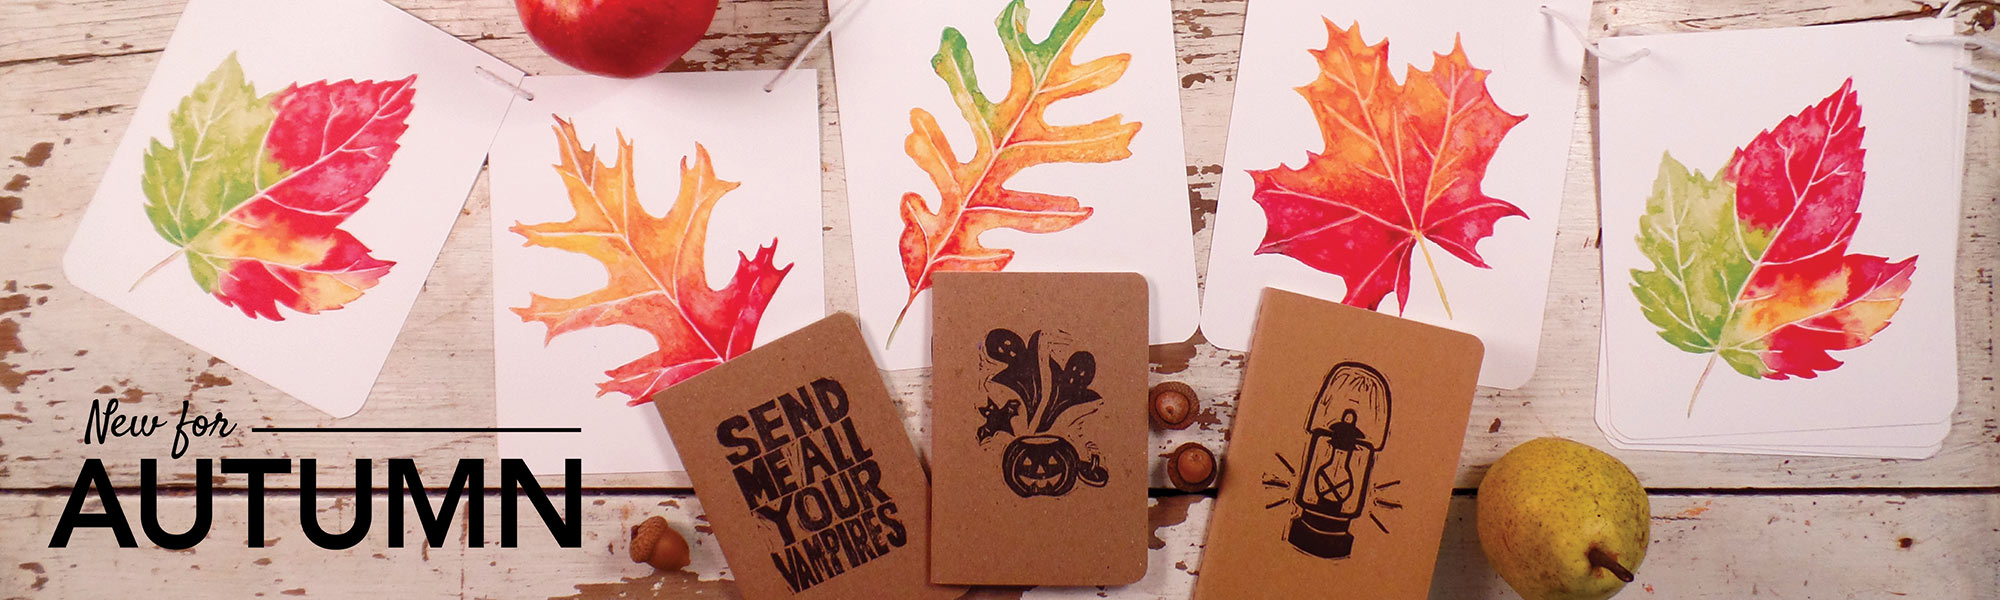 Notebooks, banners, fortune cookie wisdom calendar for fall